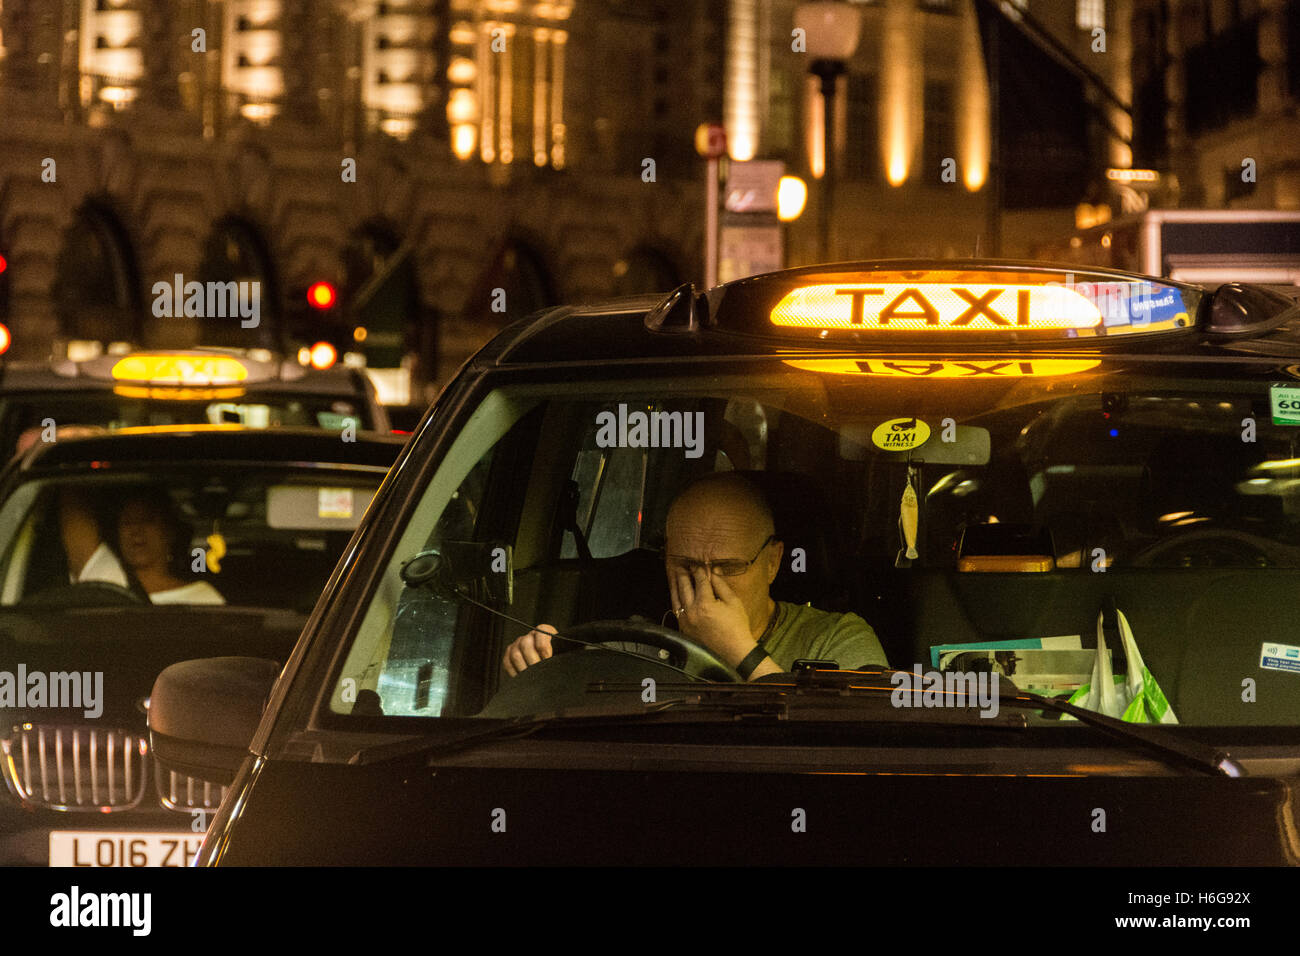 Night time fatigue shows on the face of a London taxi driver in the West End - Stock Image